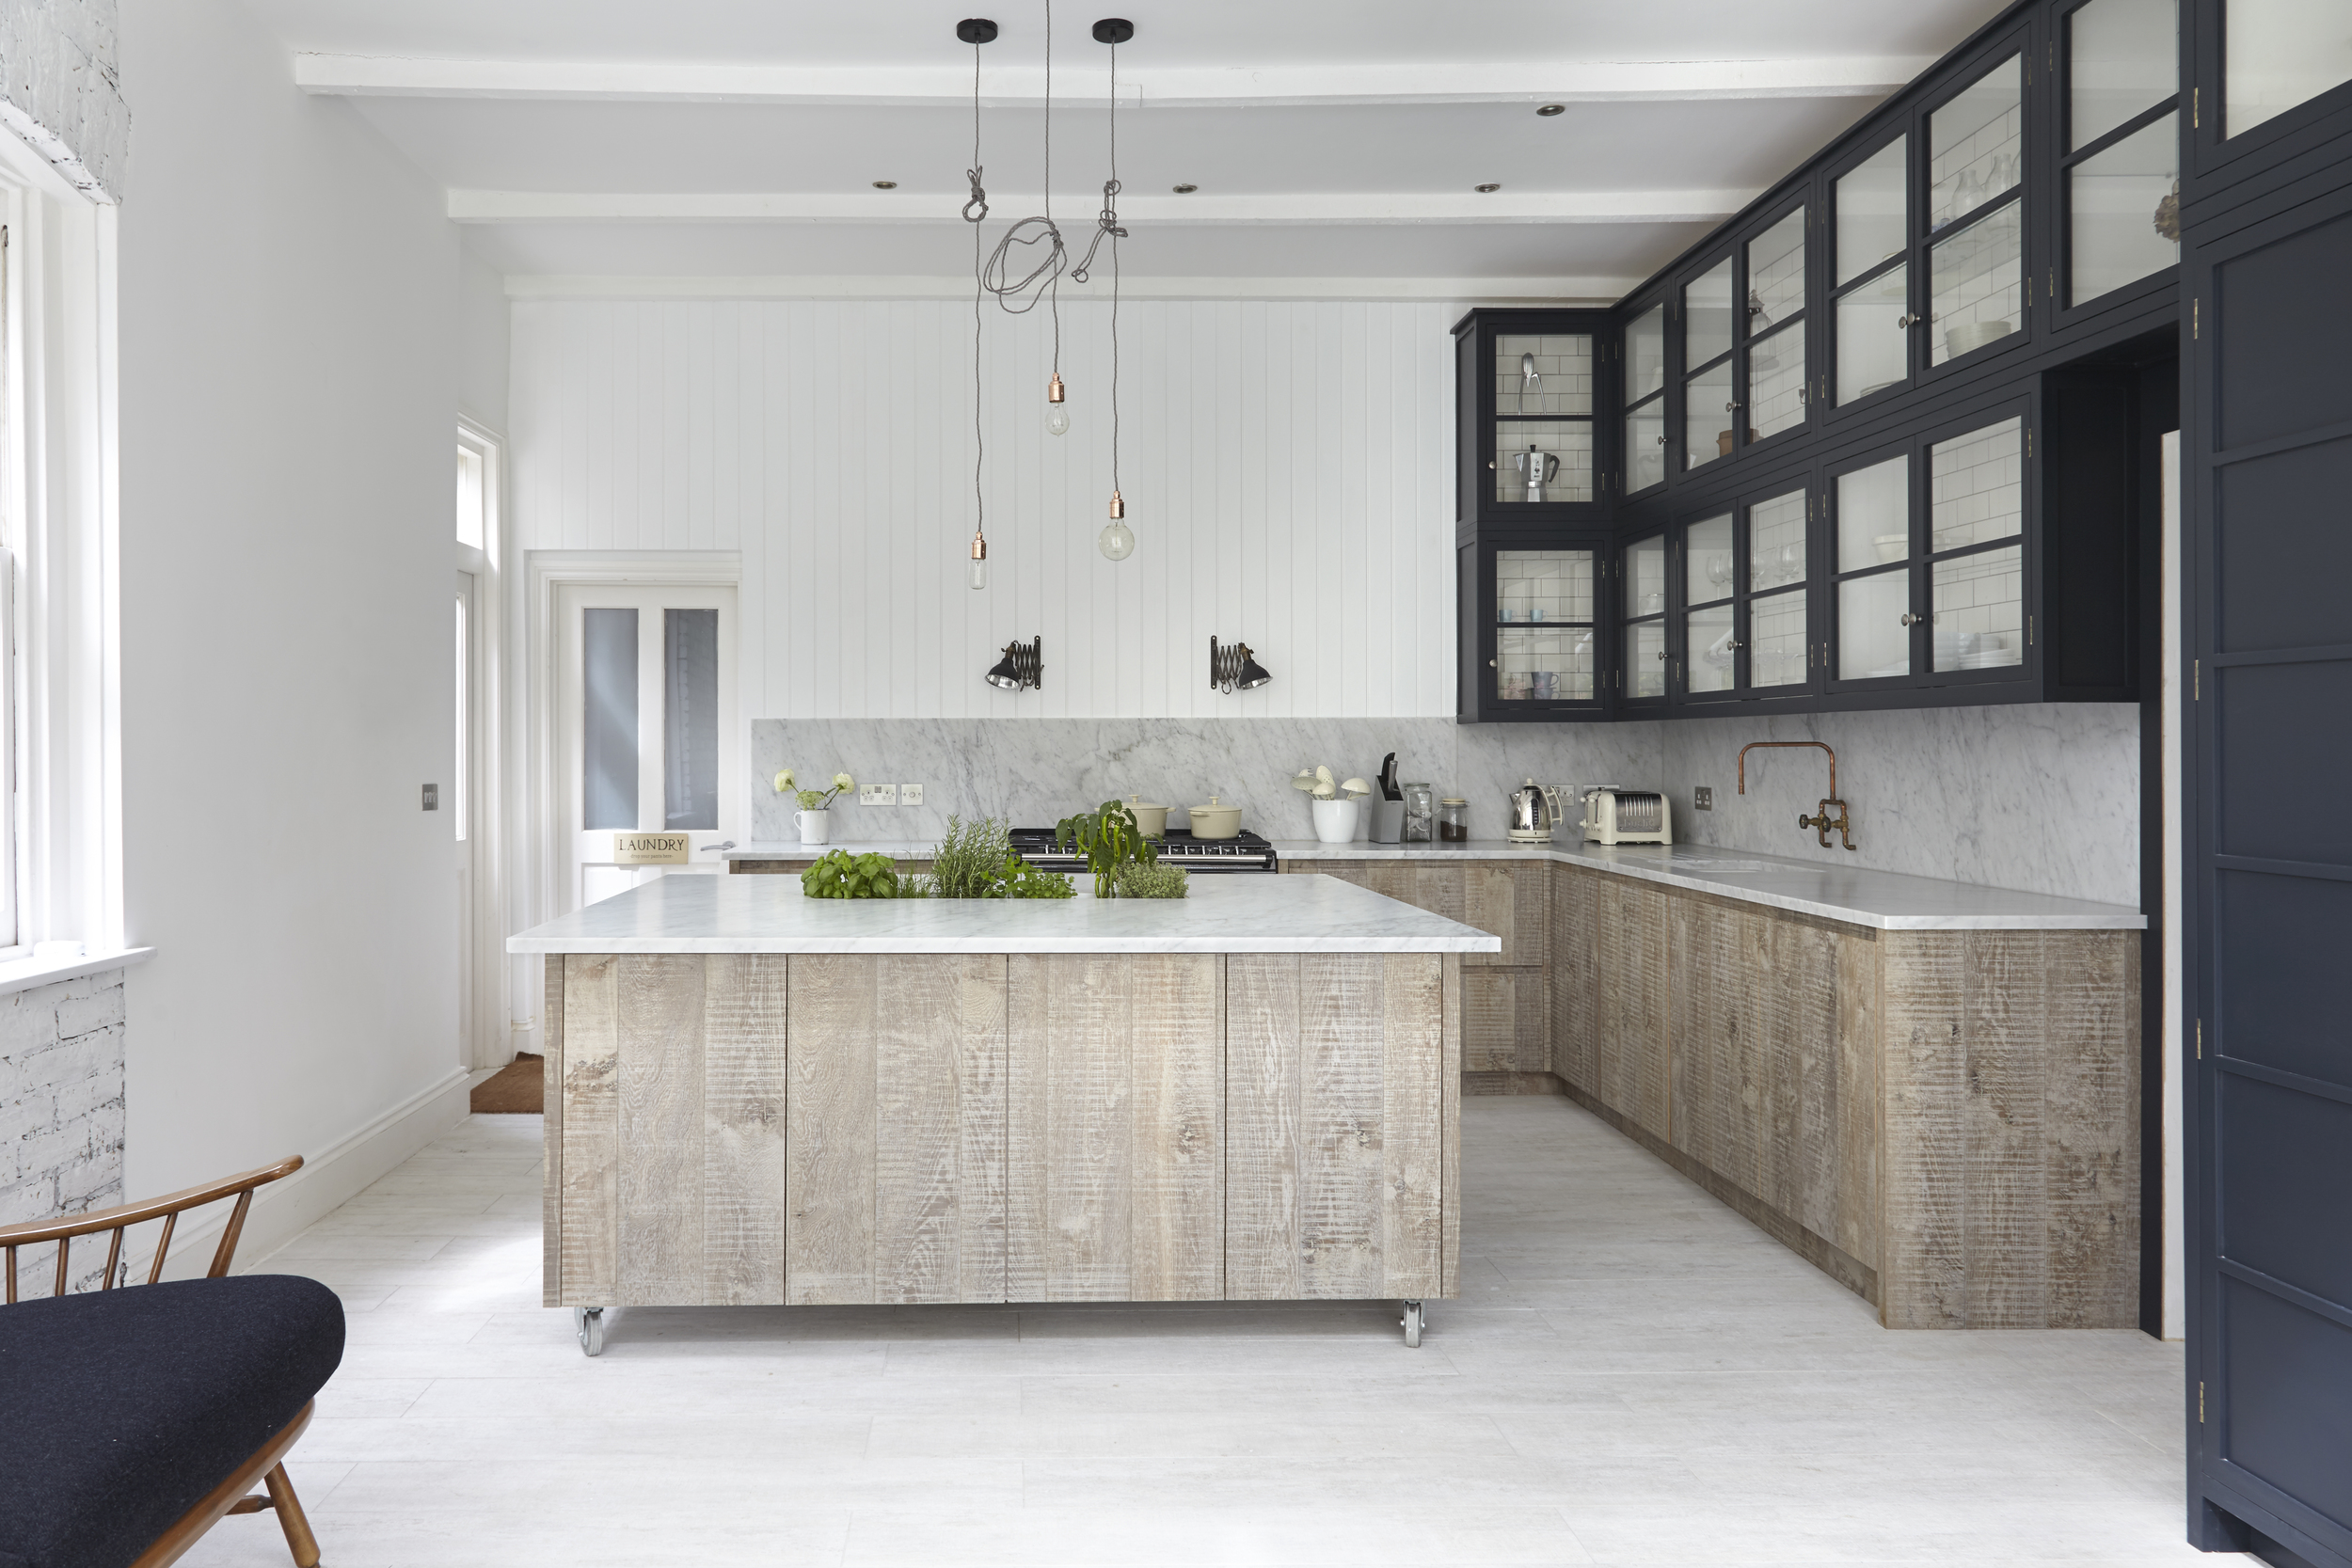 Foxgrove+kitchen.5.5.1416873+1